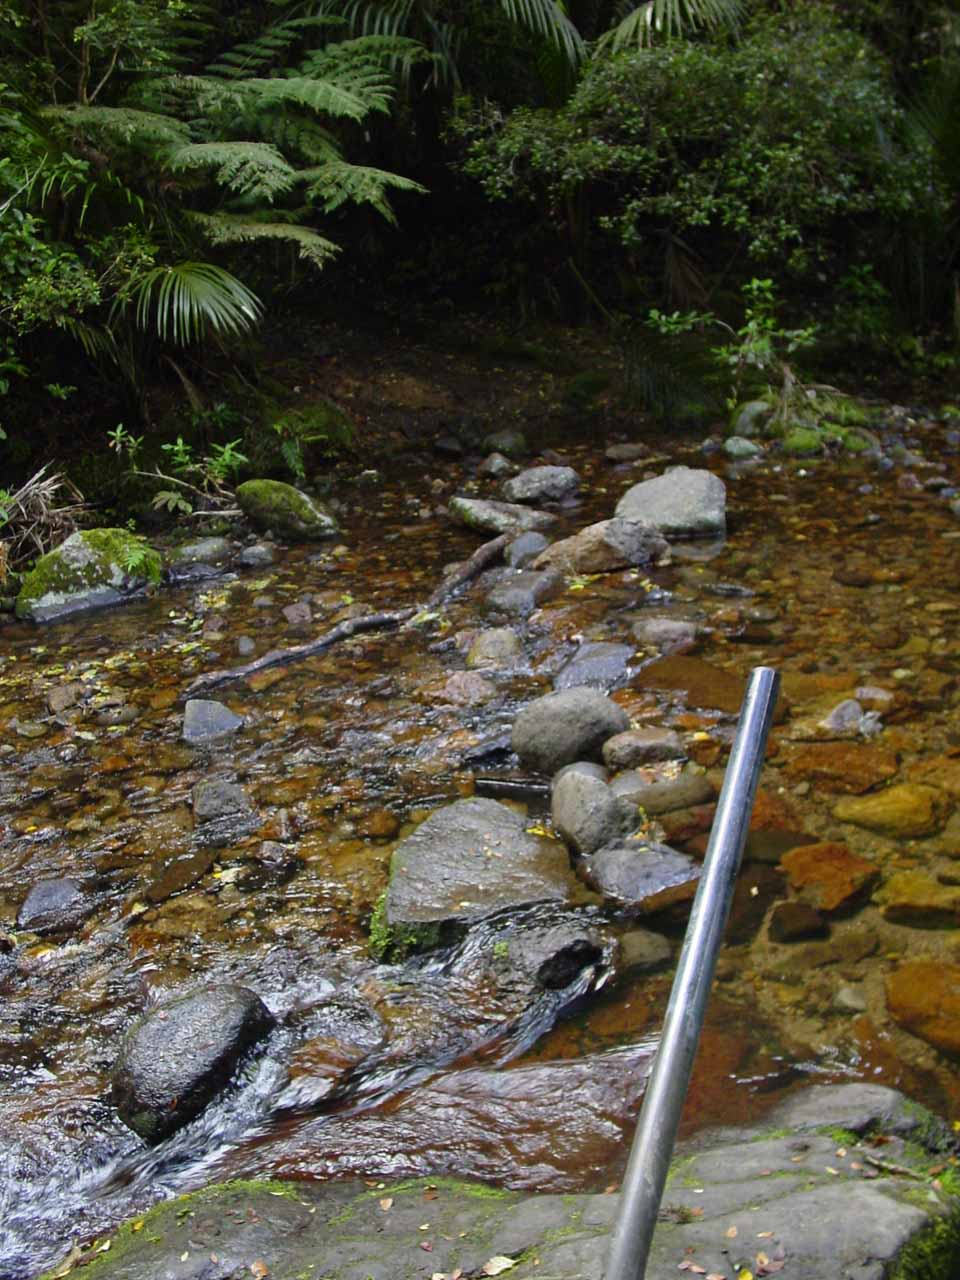 Another one of the stream crossings to get to Wentworth Falls